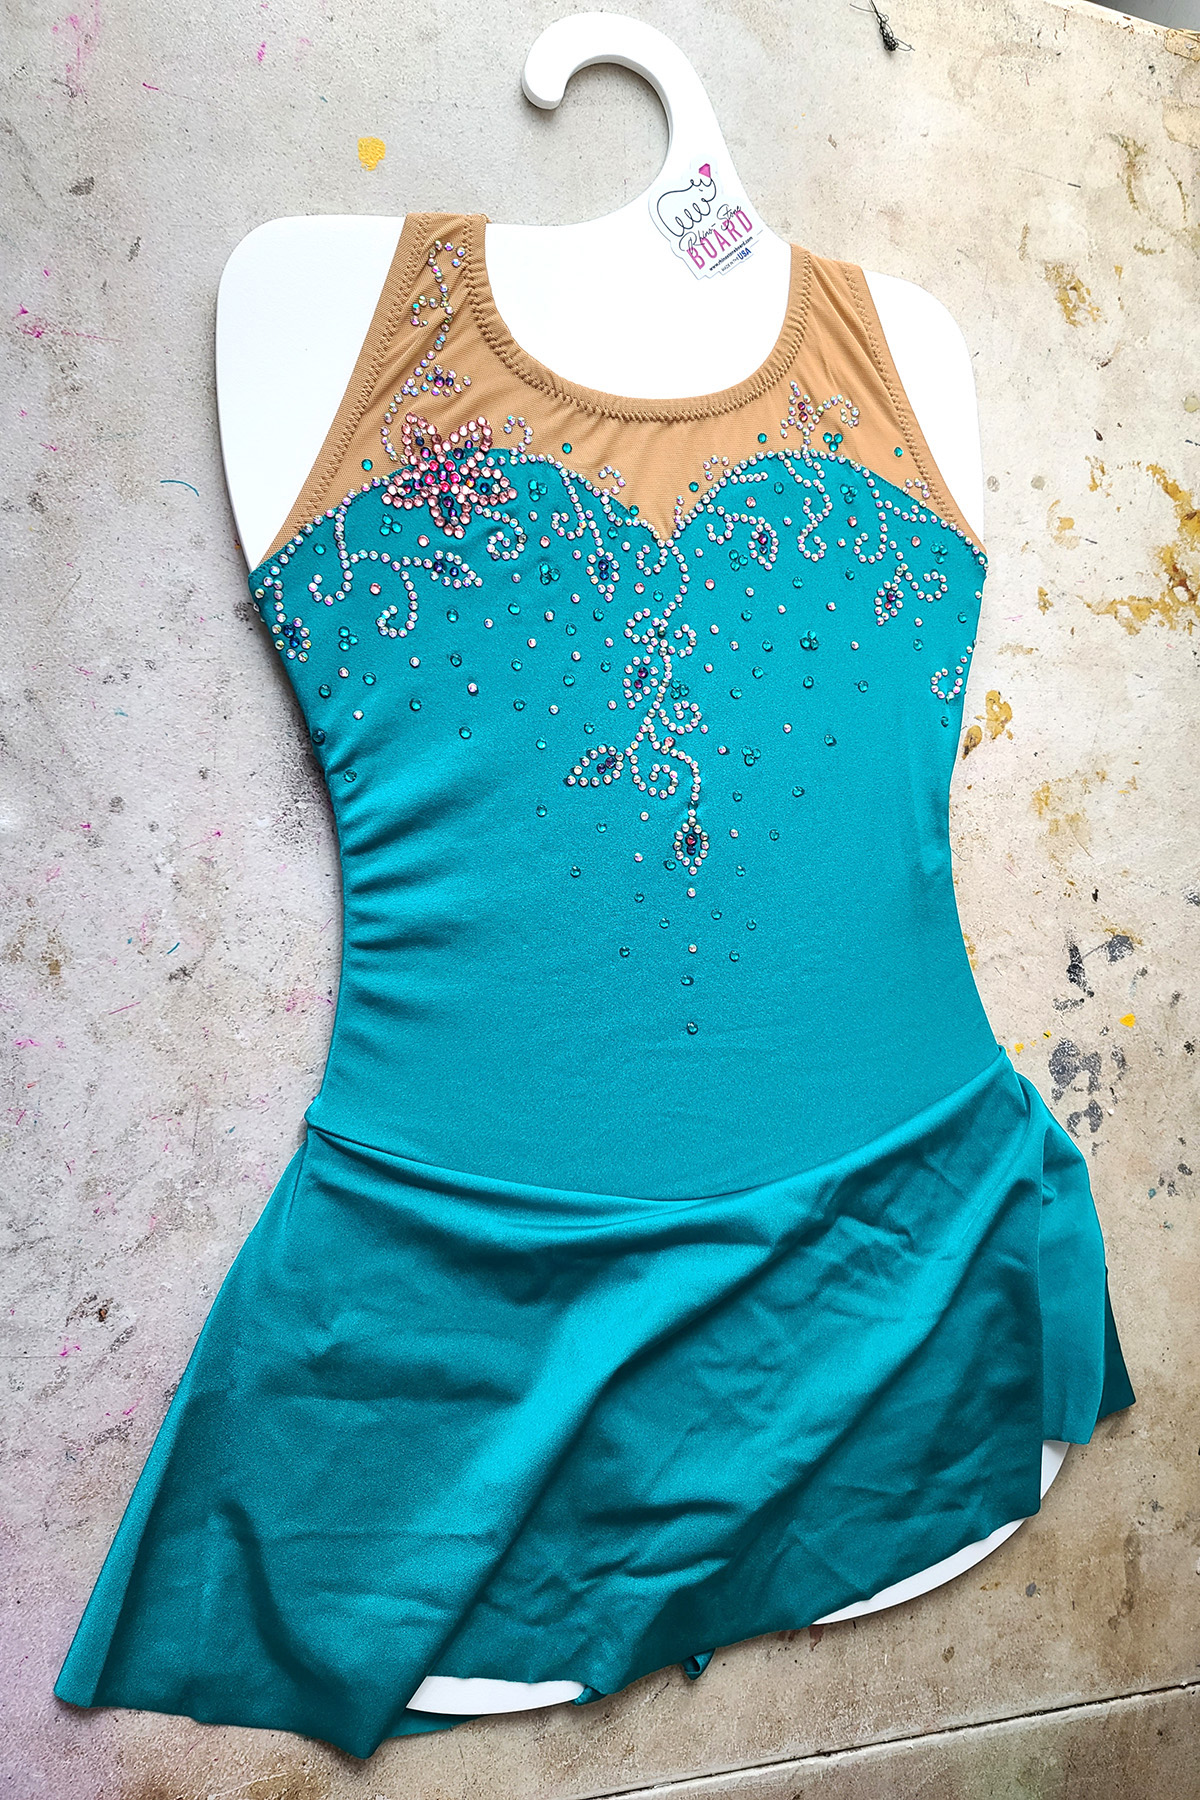 A light teal skating dress is on a white Rhino-Stone board.